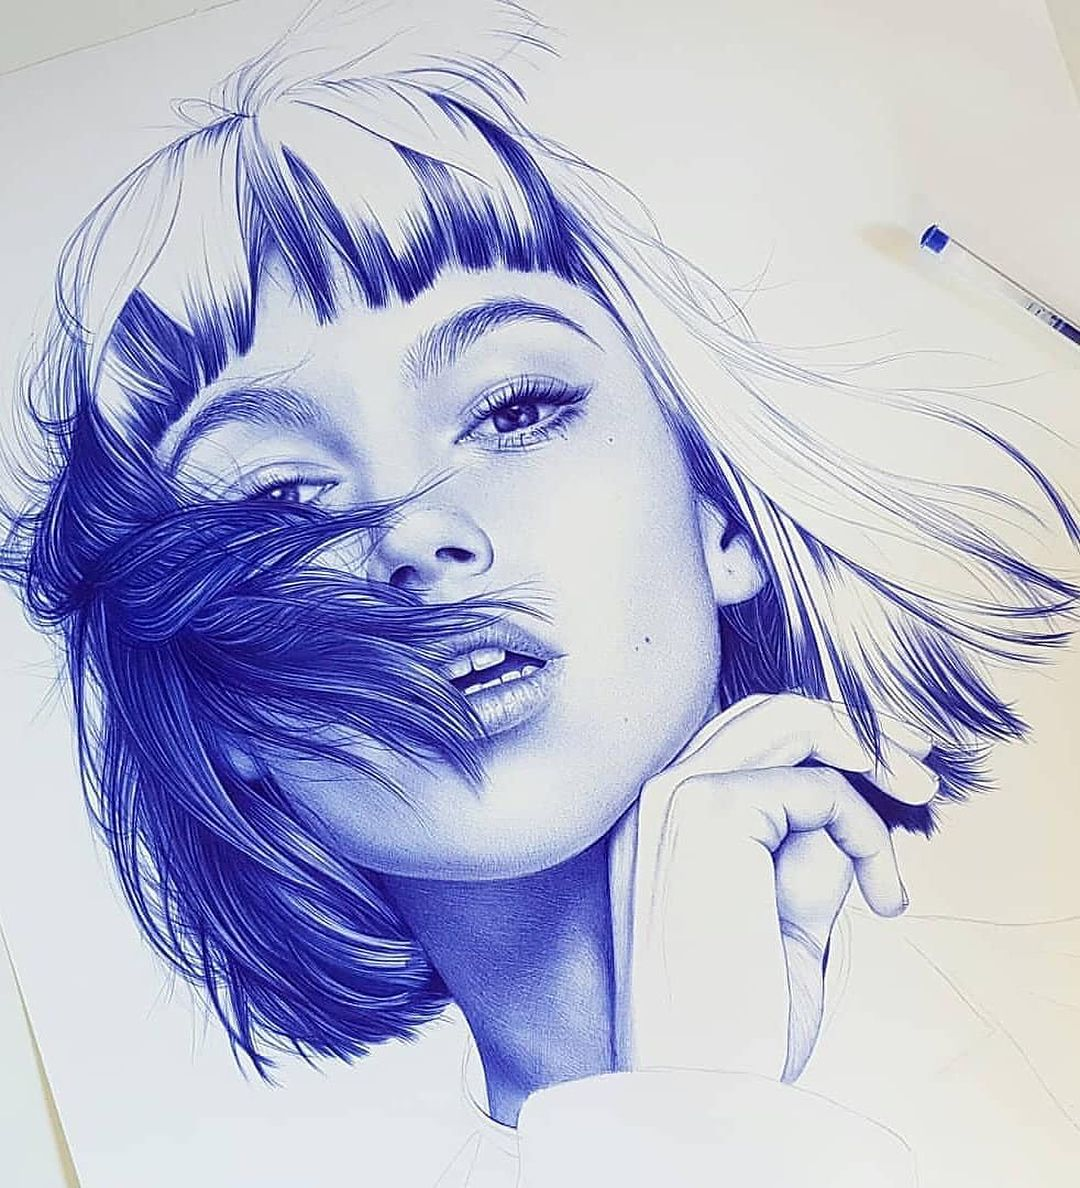 Rate these ballpoint pen drawings from 1 10 follow us arts hub for more by evagarrido follow us arts hub